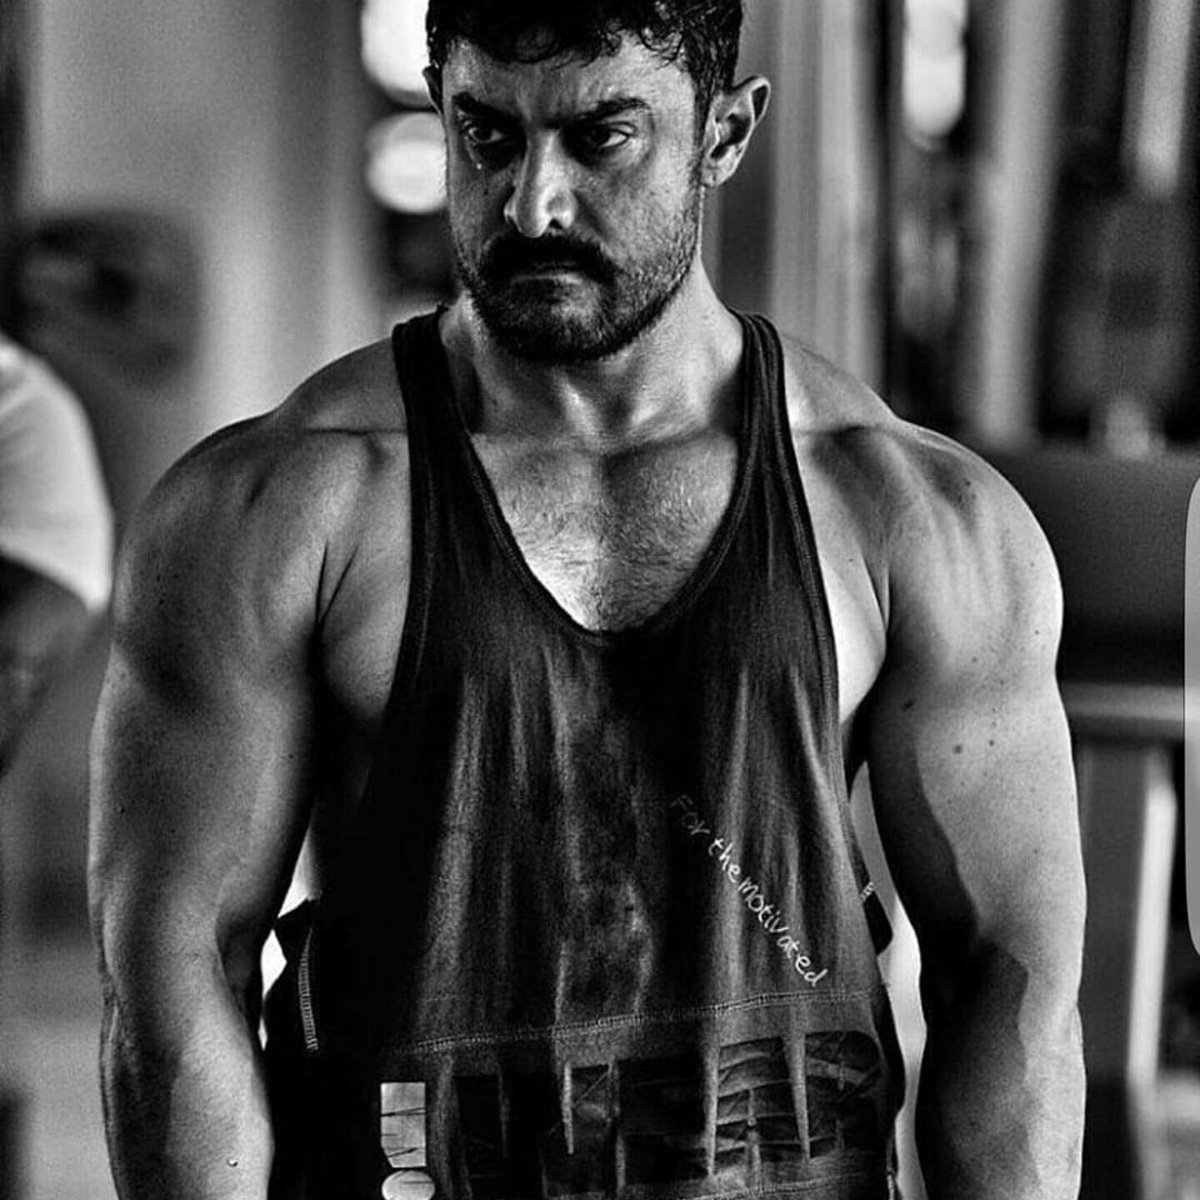 One of the most inspiring actors in the world....dedication to his role! Love u sir for inspiring us all@aamir_khan https://t.co/08R4FjTtza